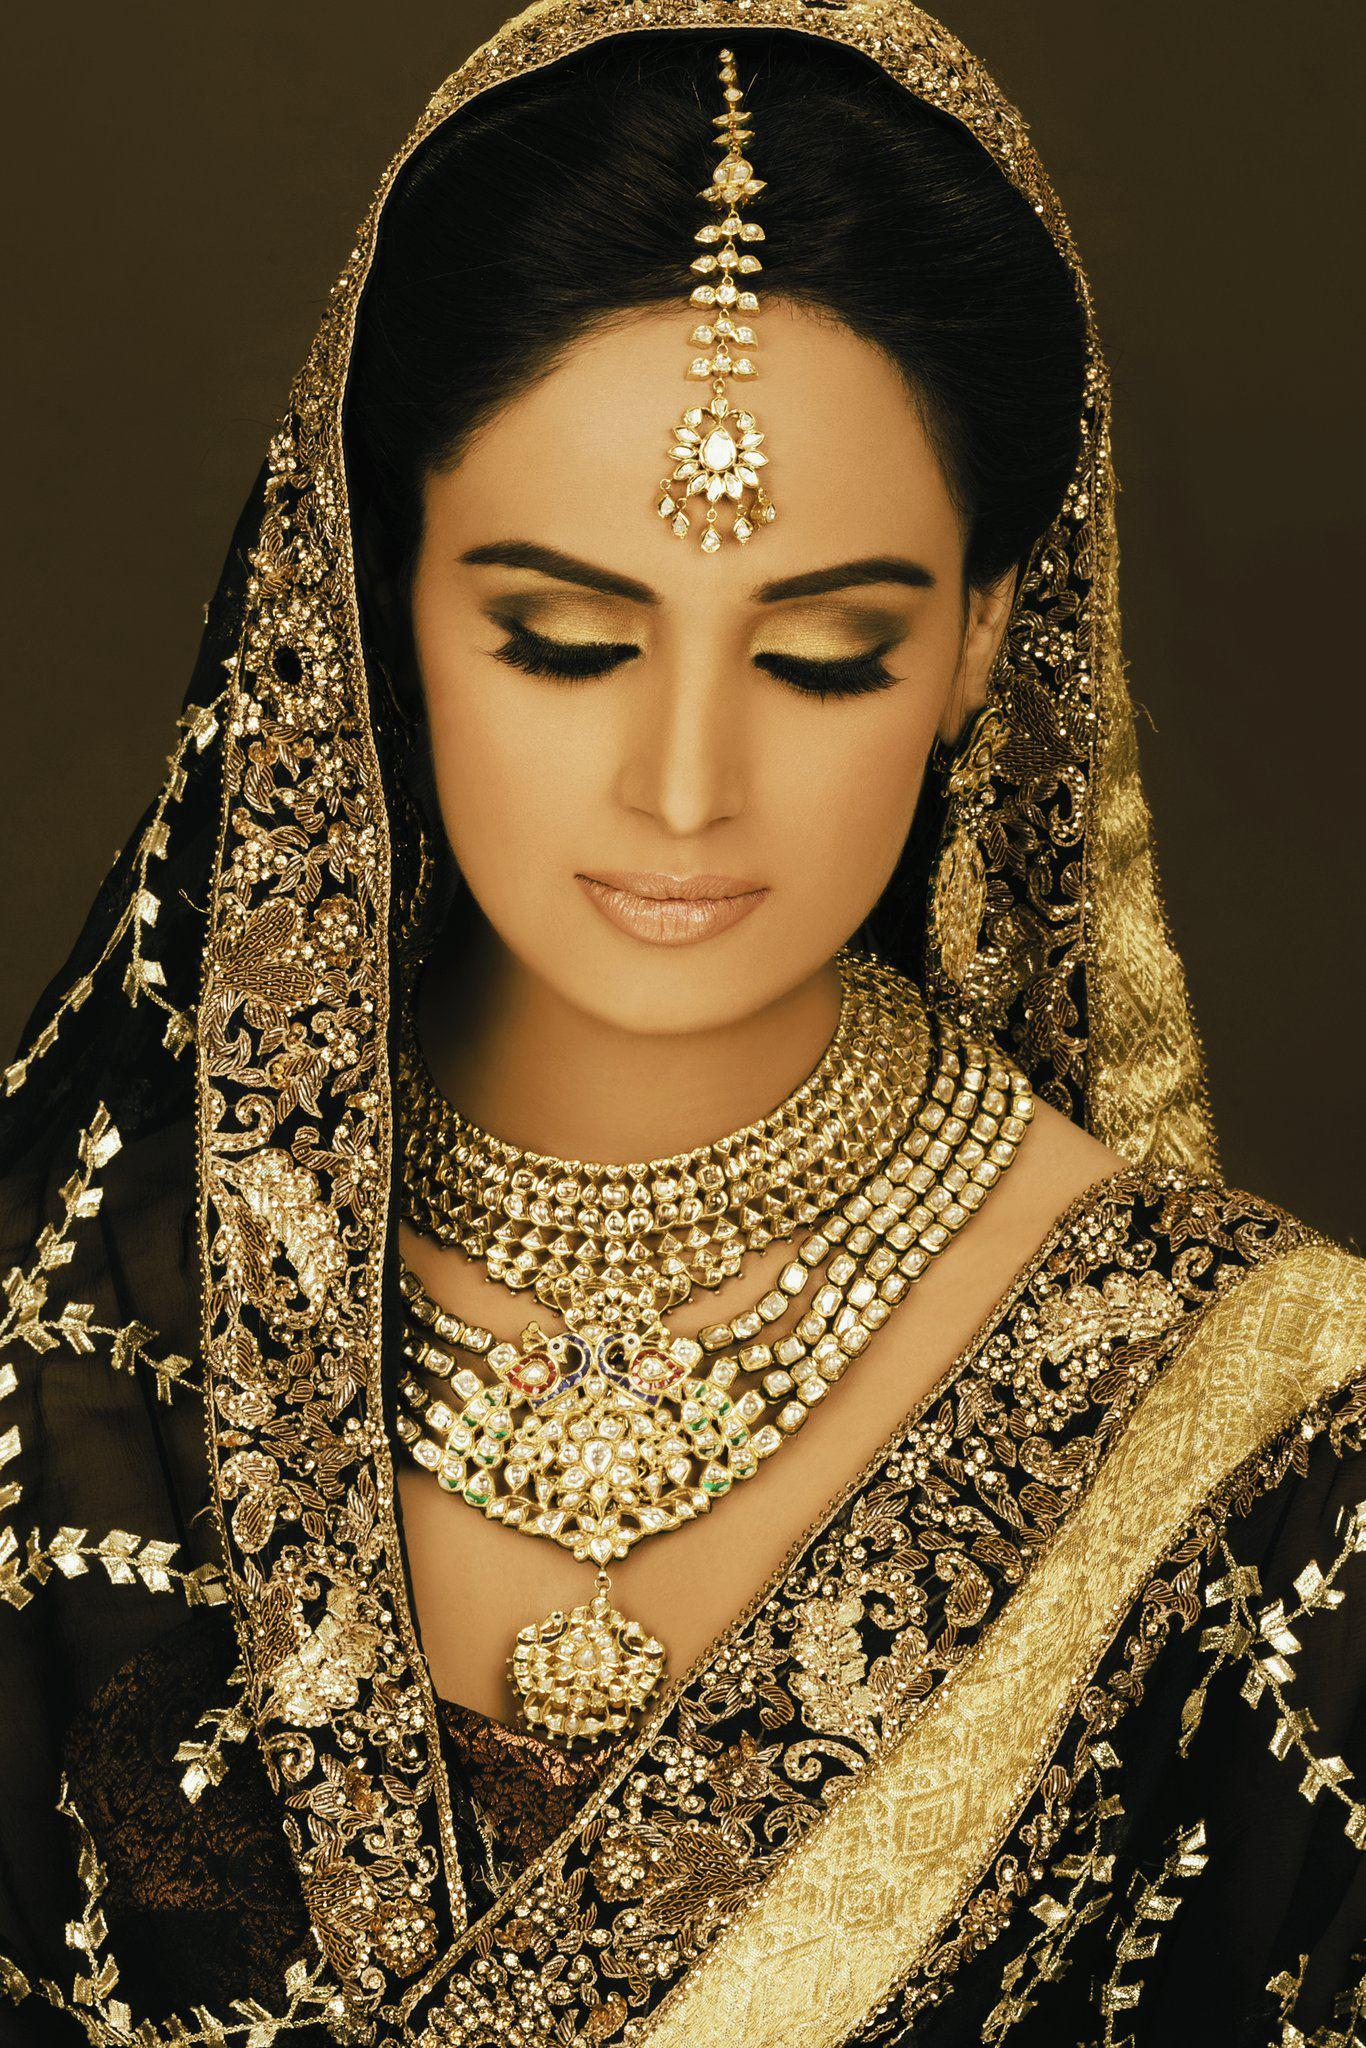 Mughal Bride - image 4 - student project